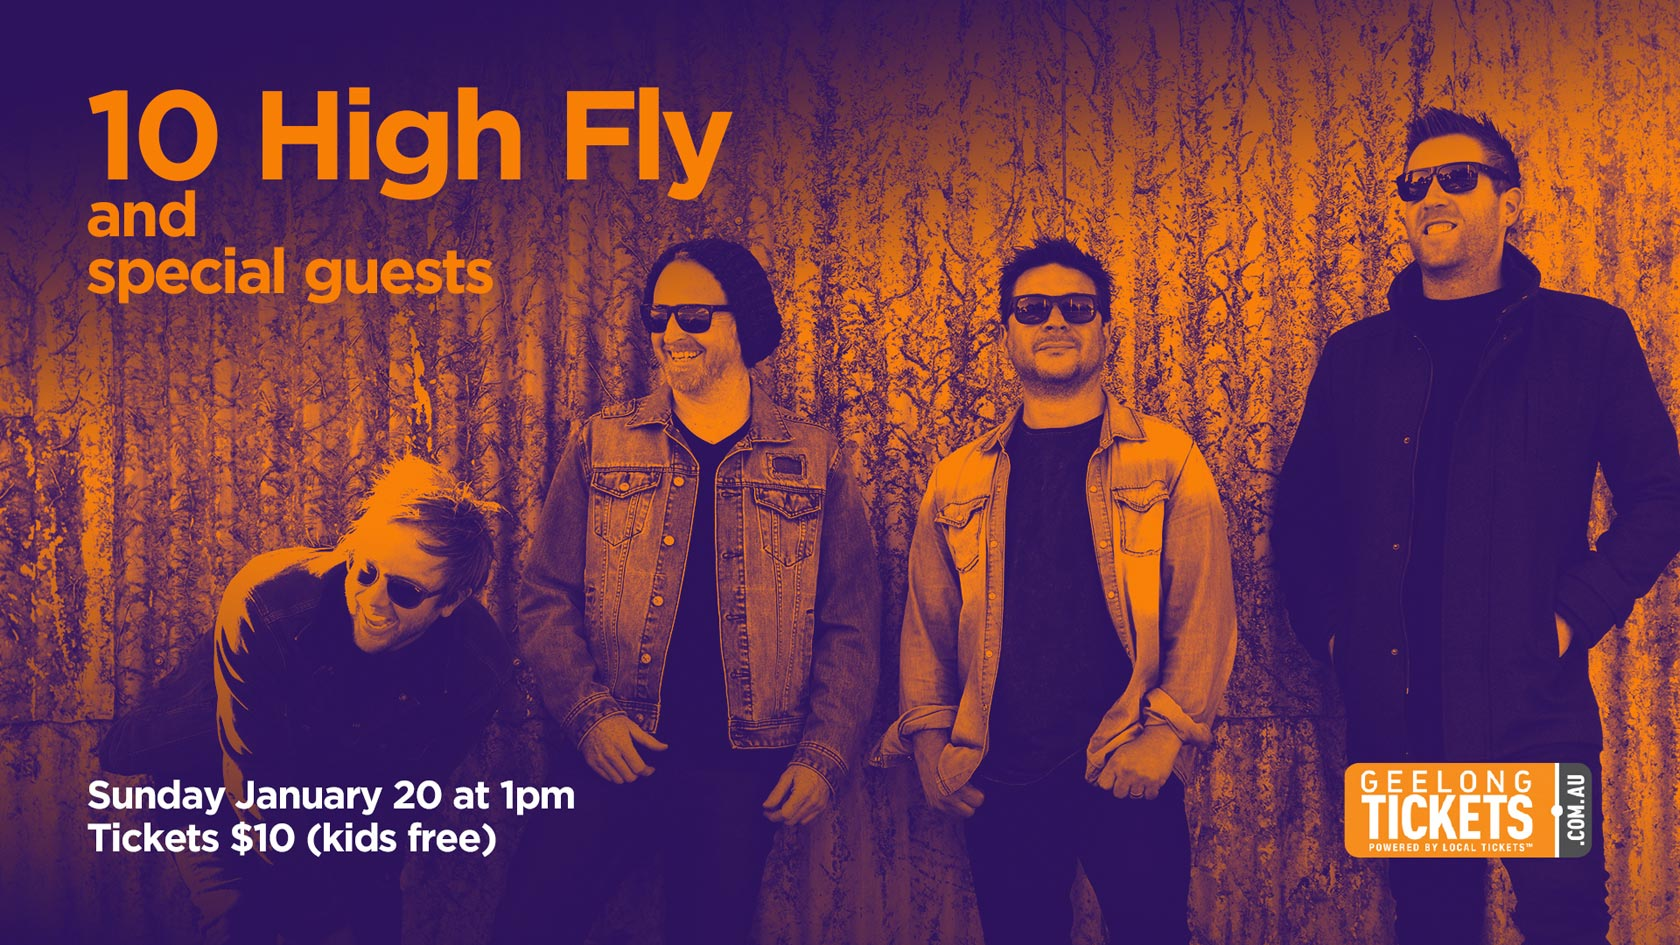 10-high-fly-full